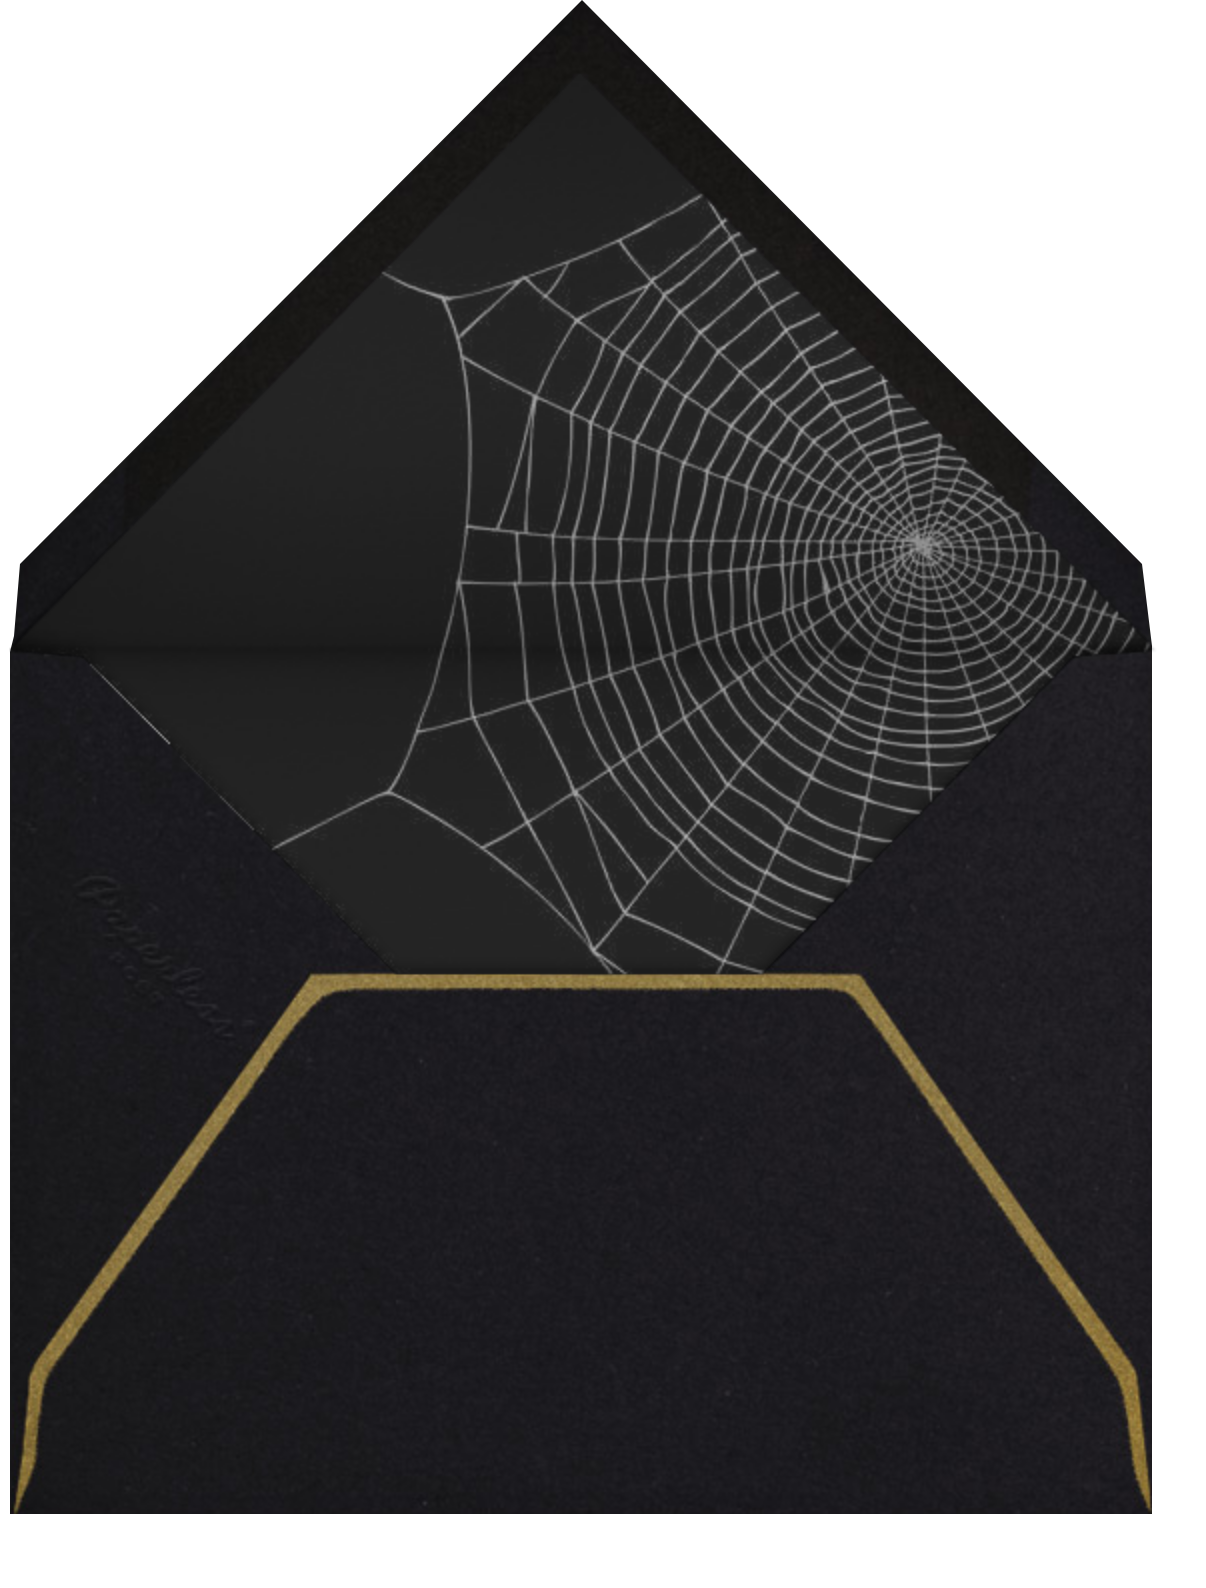 Cobwebs - Paperless Post - Halloween - envelope back